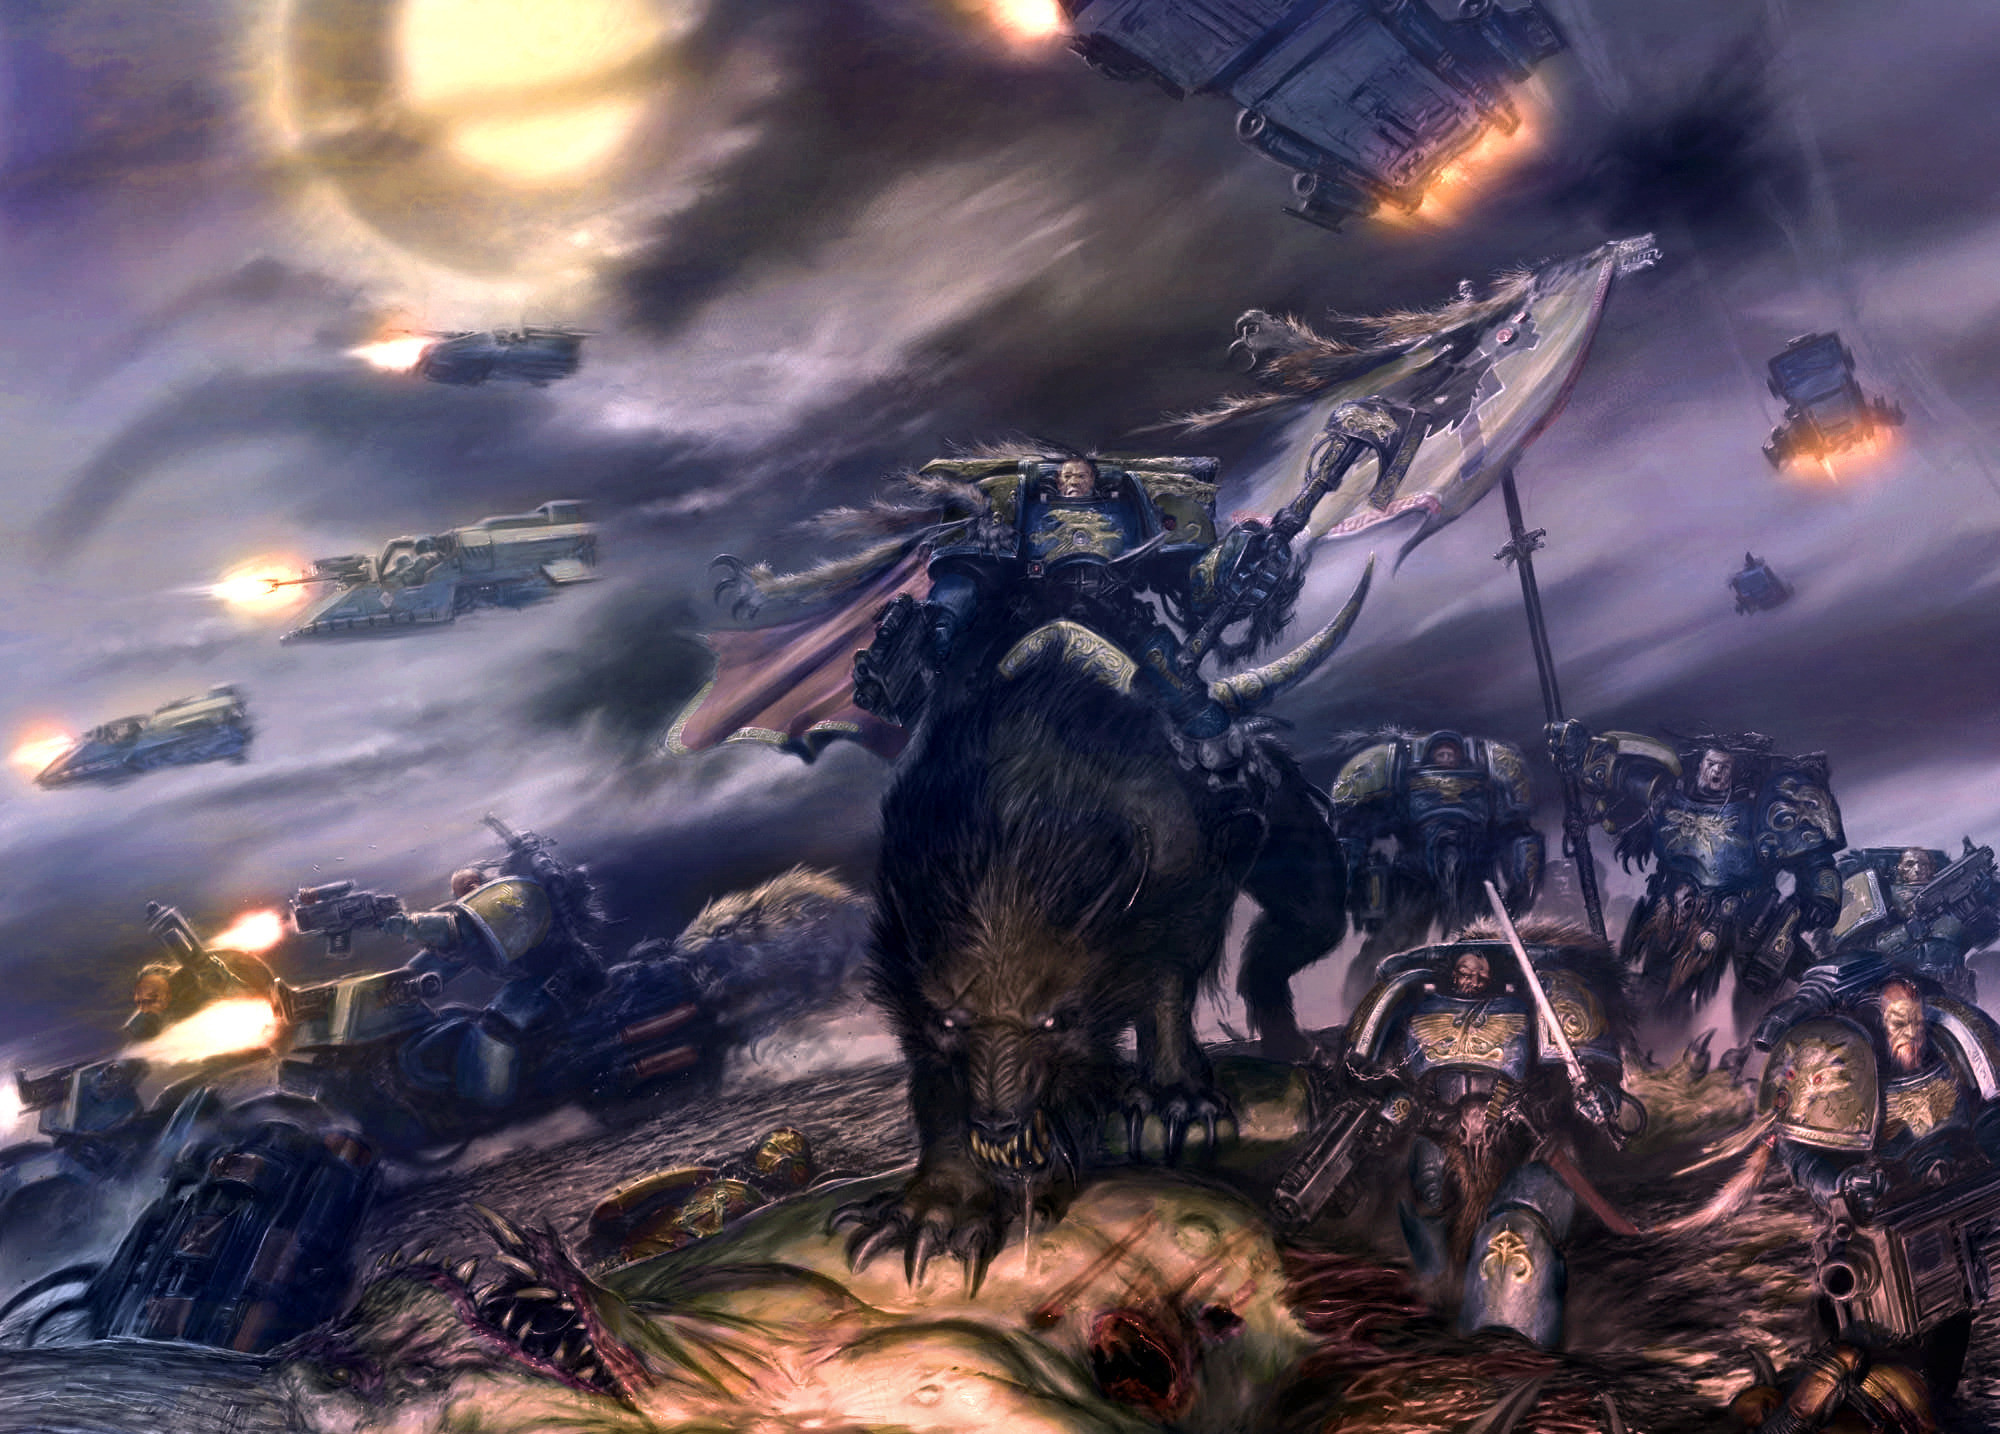 2000x1434 Wallpaper Warhammer 40k, space wolves, spaceship, battle desktop .